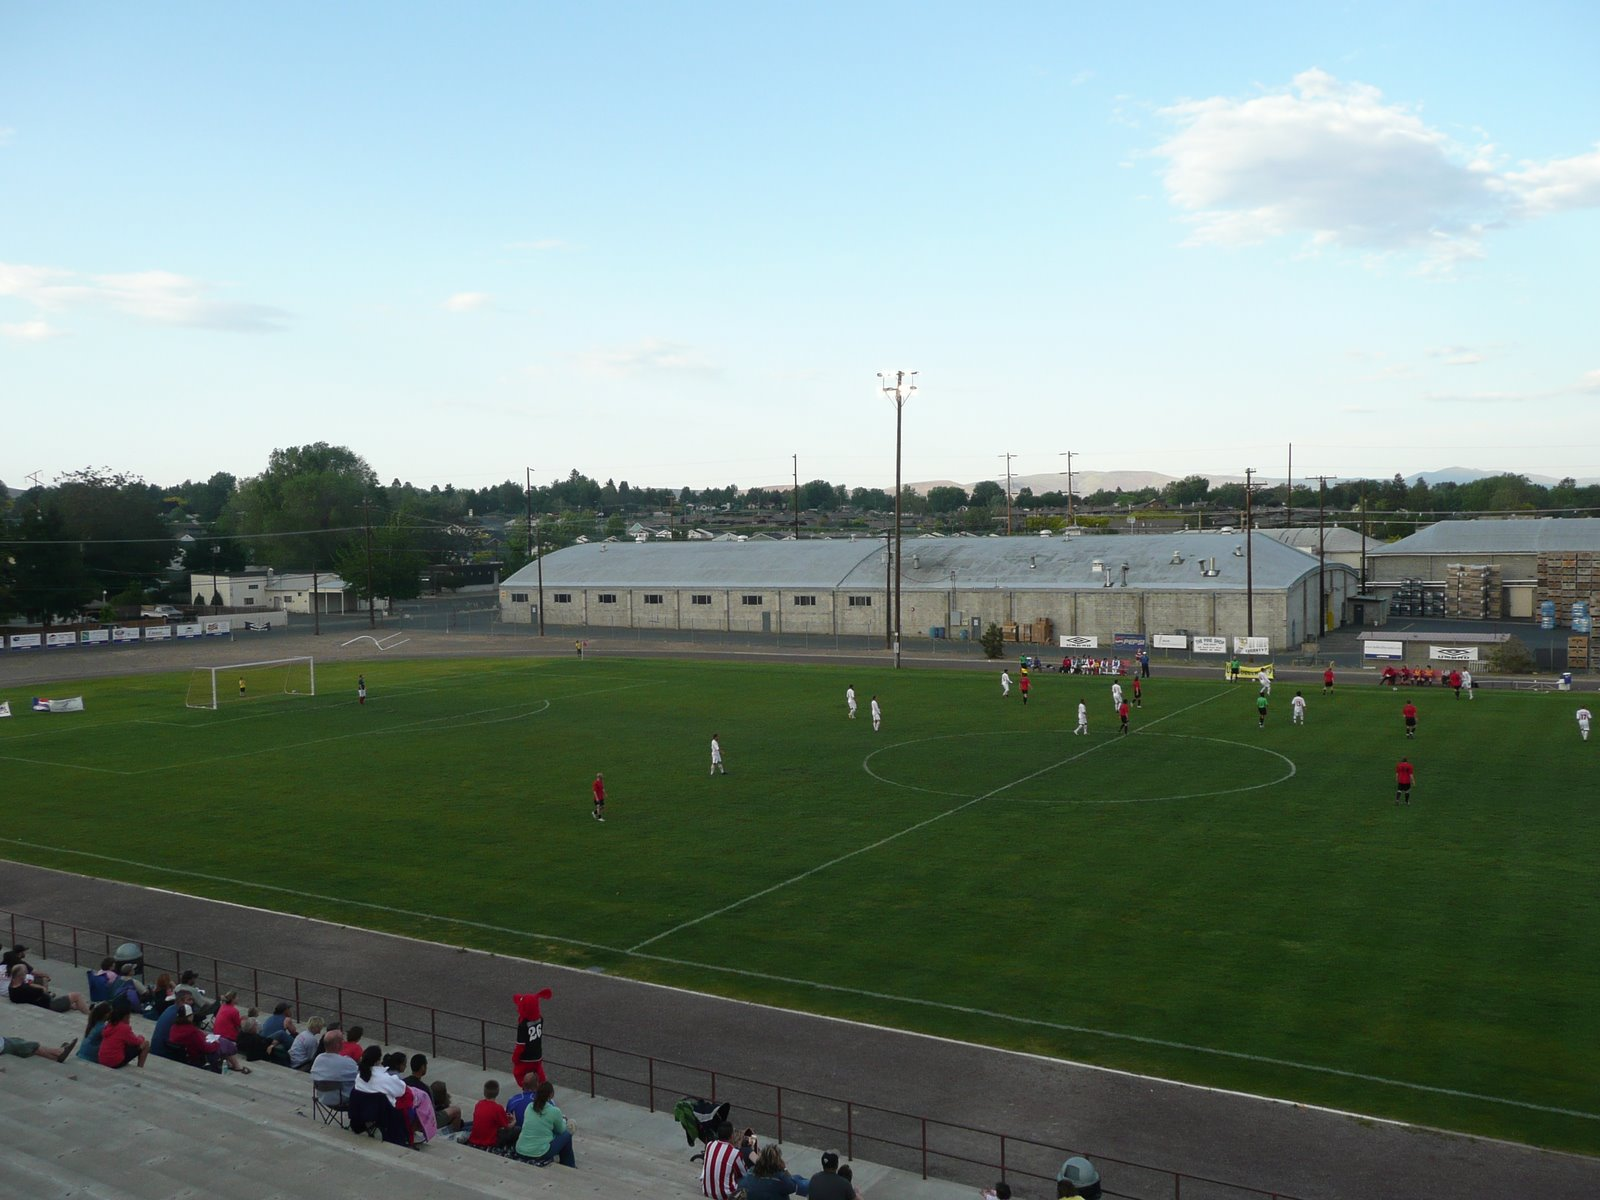 Fall Day at Houck Stadium « Cape Girardeau History and Photos